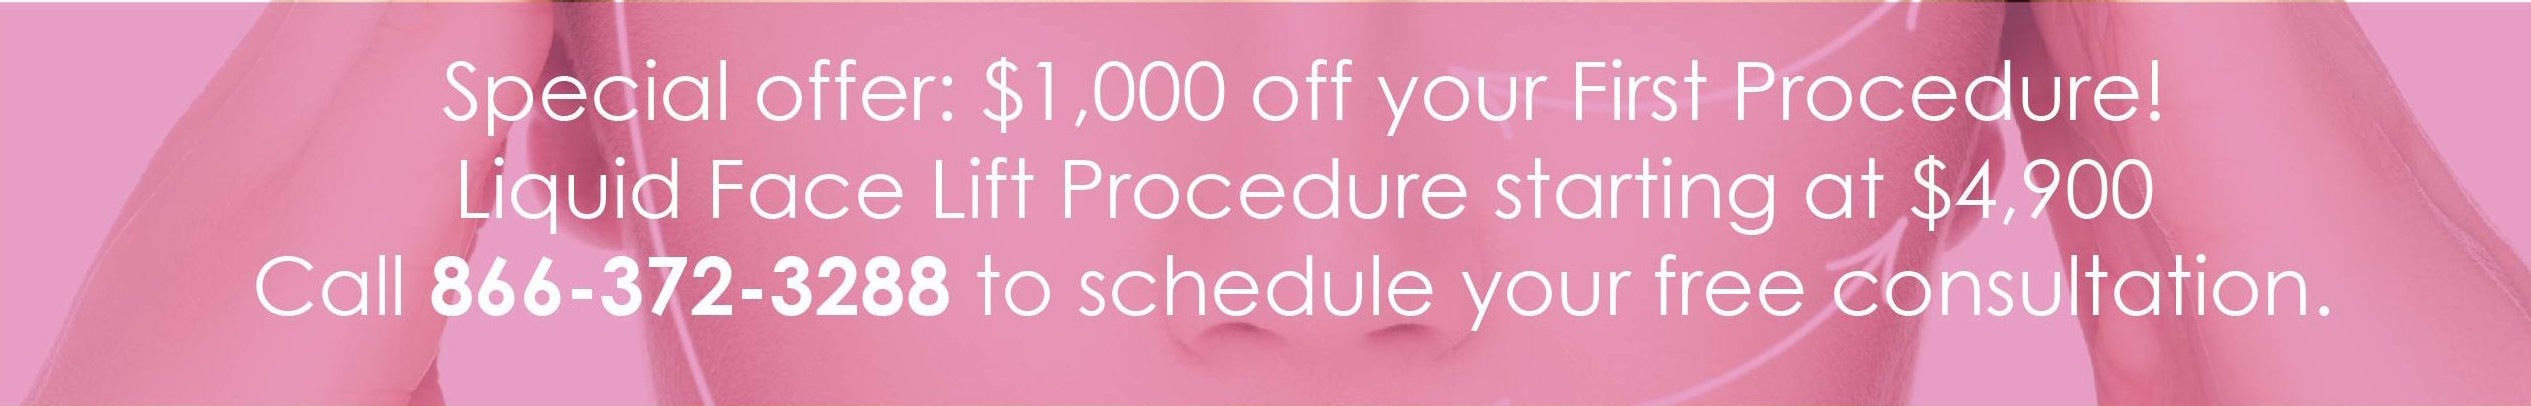 Plastic Surgery Offers and Discounts